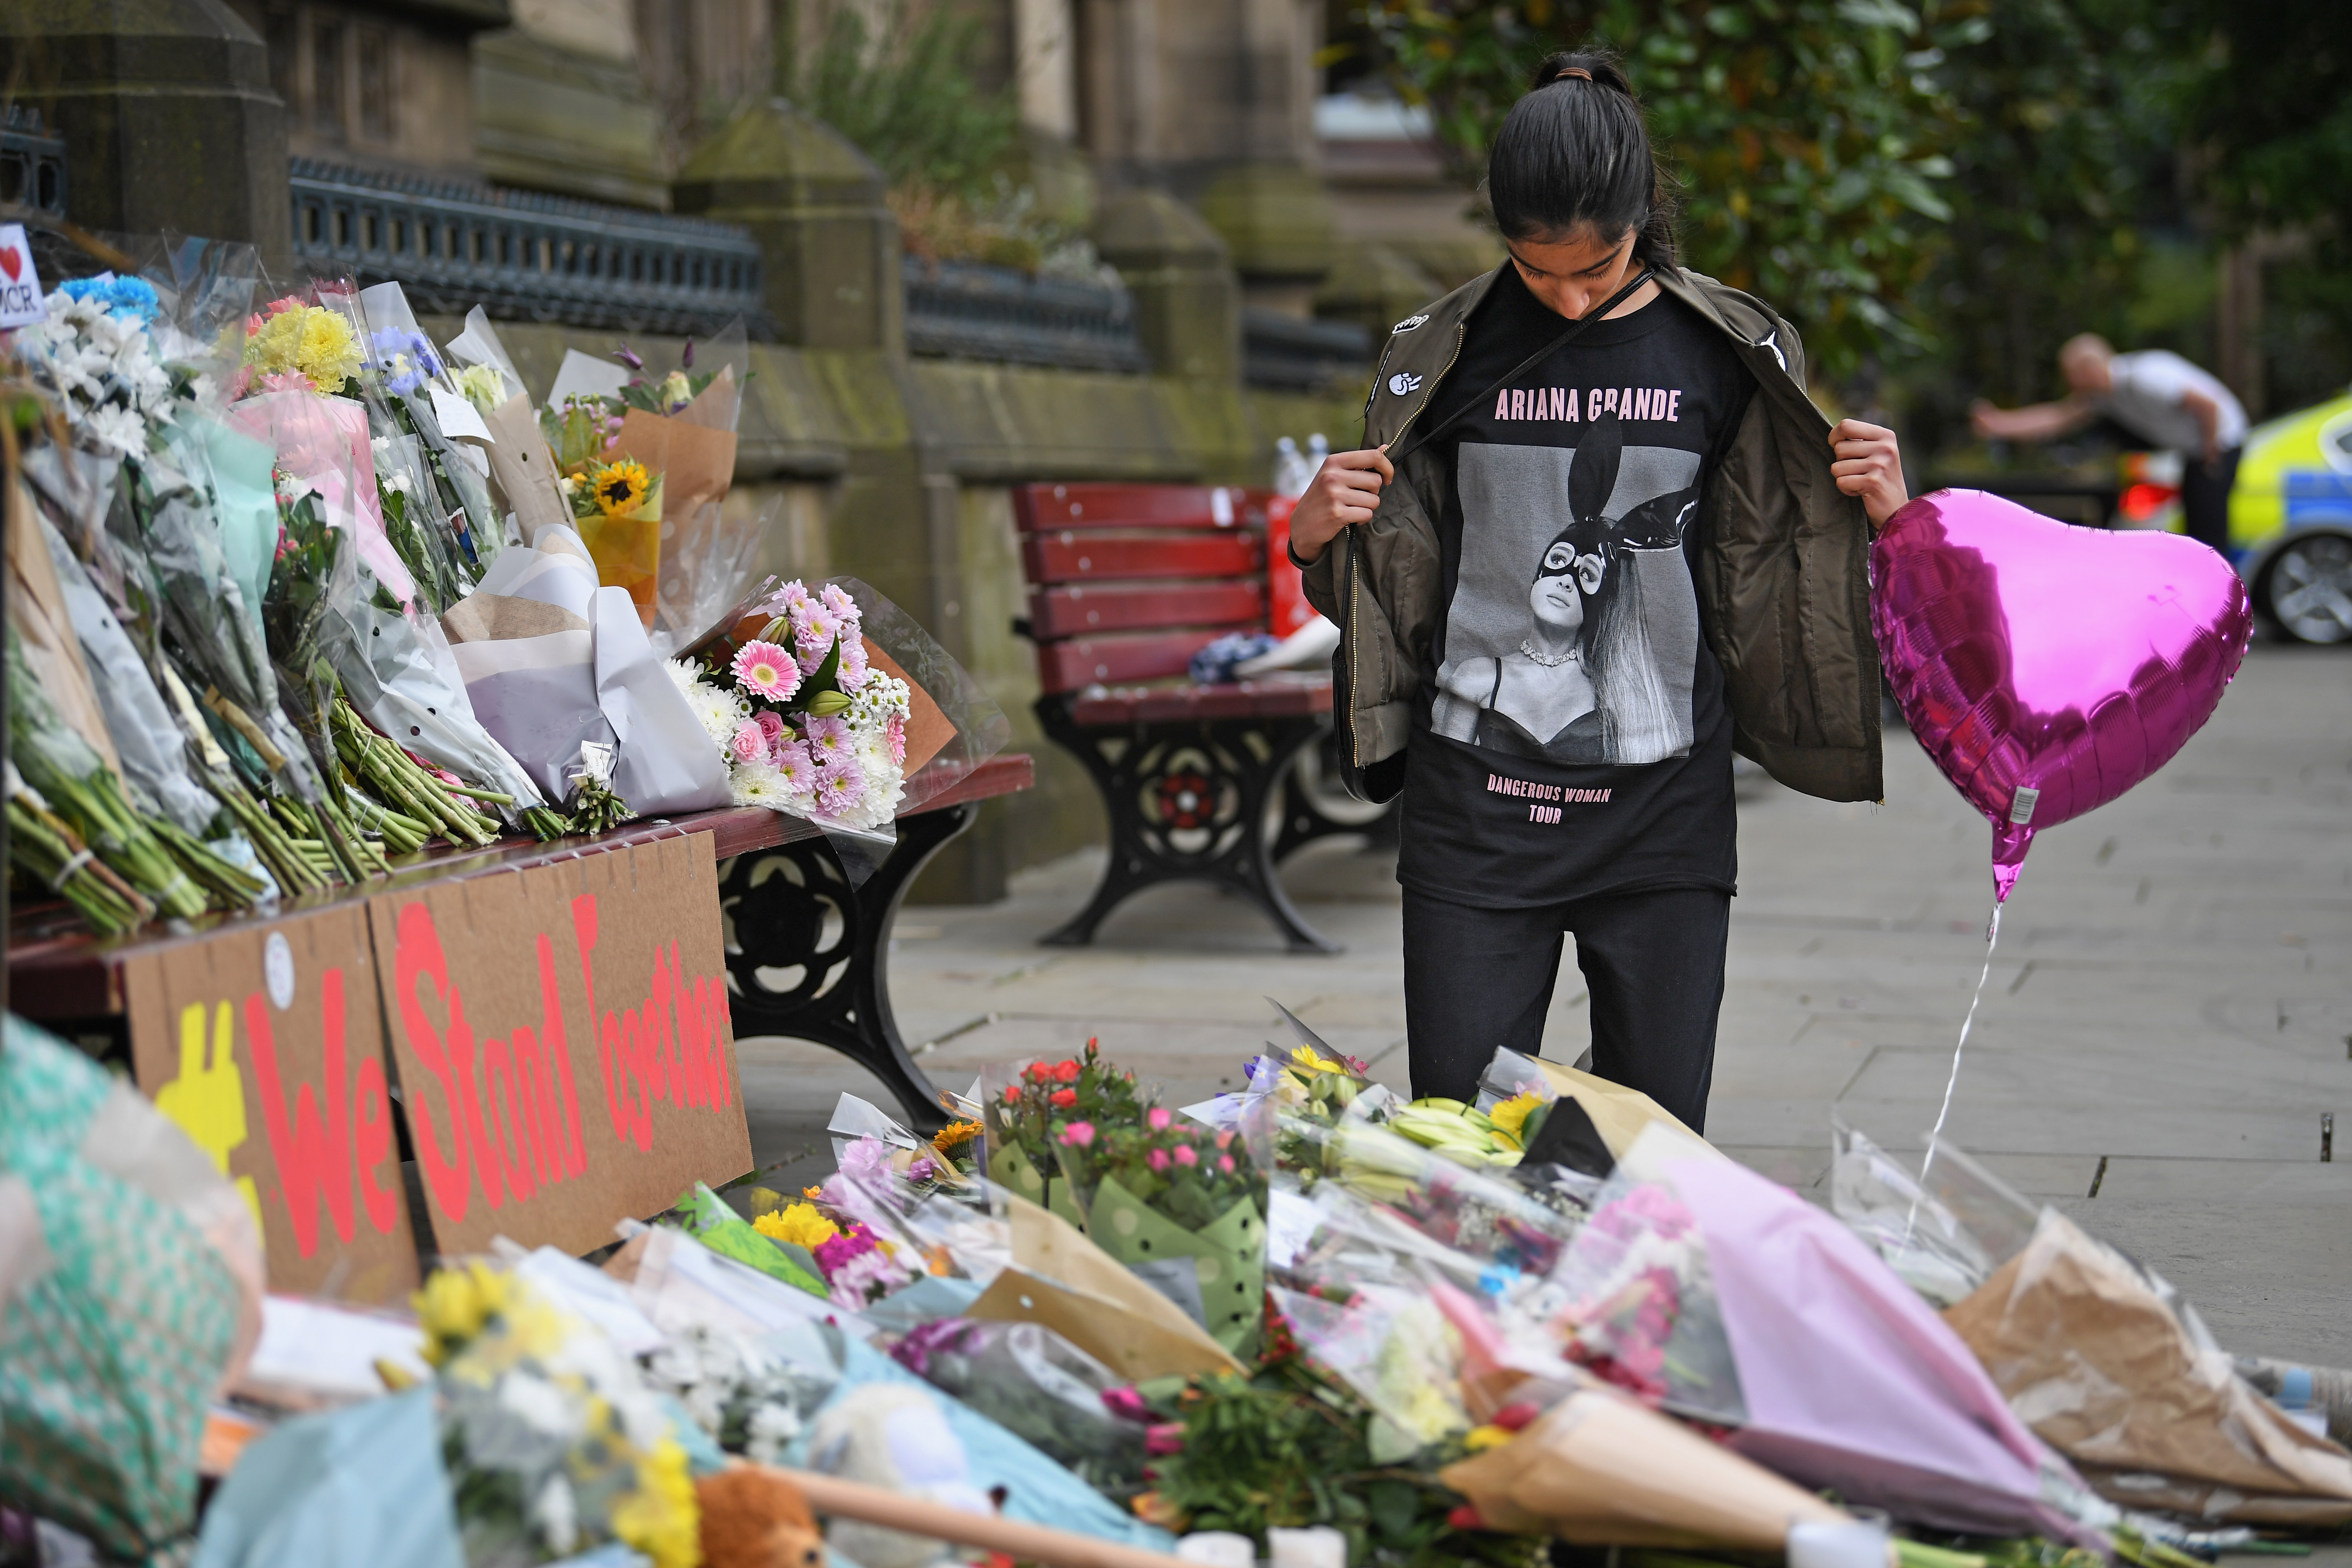 Thirteen year old Iqra Saied, who attended the Ariana Grande concert                        looks at floral tributes and messages as the working day begins on May 24, 2017 in Manchester, England.